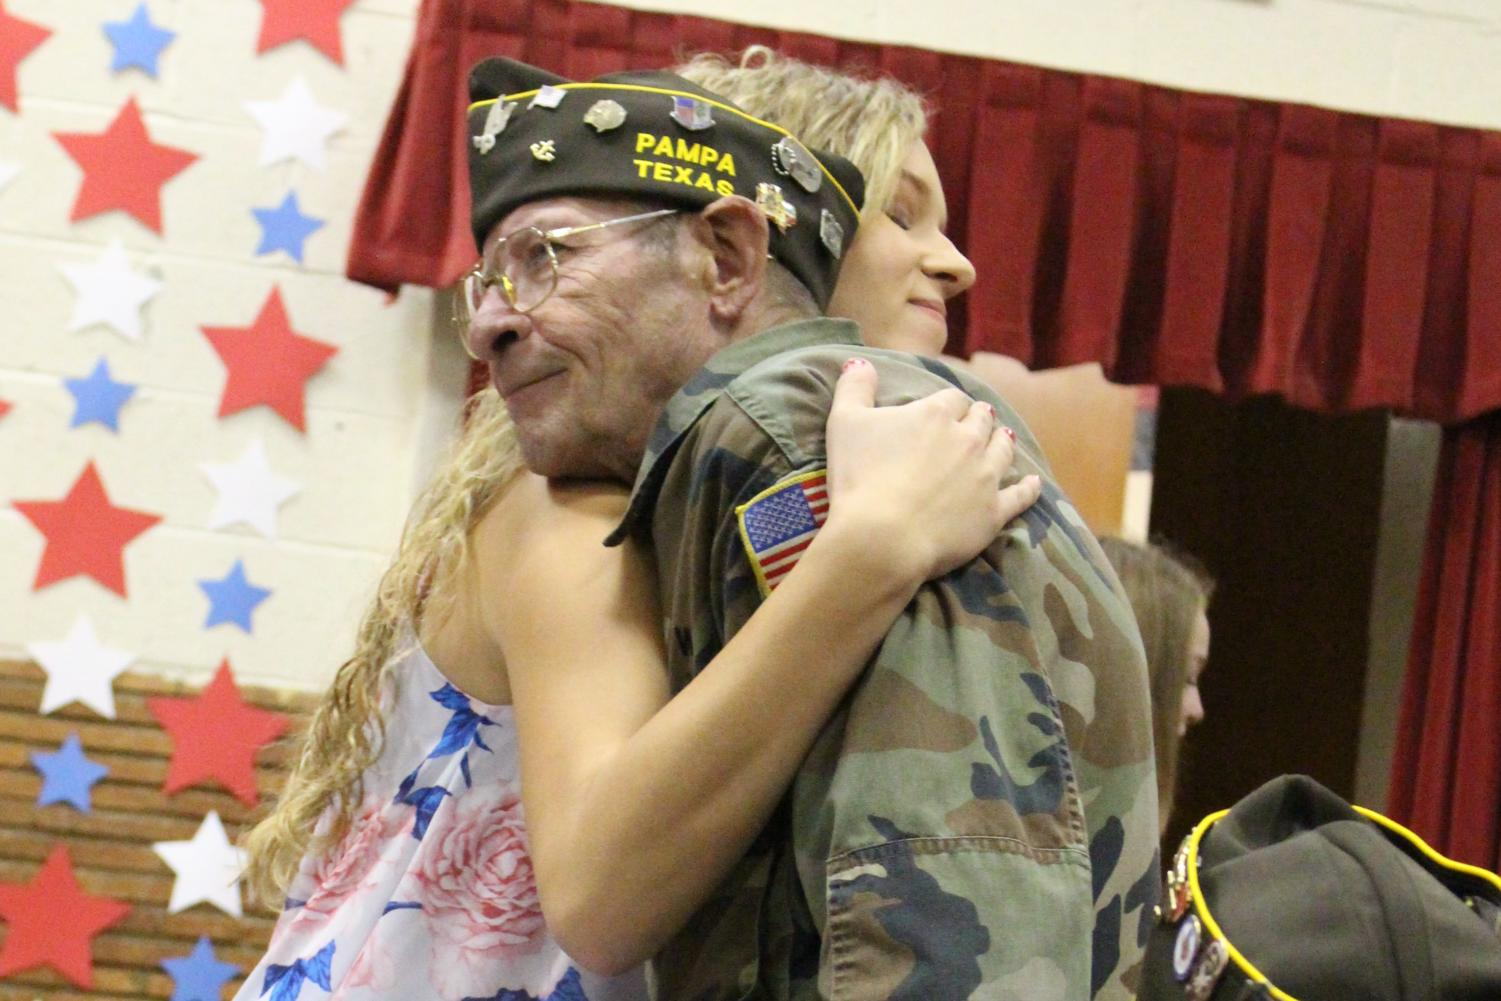 Student Council Vice President Chelsey Lamb gives  a hug to a member of the Pampa Veterans of Foreign Wars group during the Veterans Day Program. Veterans Day is an official United States public holiday that honors military veterans, who served in the United States Armed Forces. Groom students - from elementary to high school - help with this event.